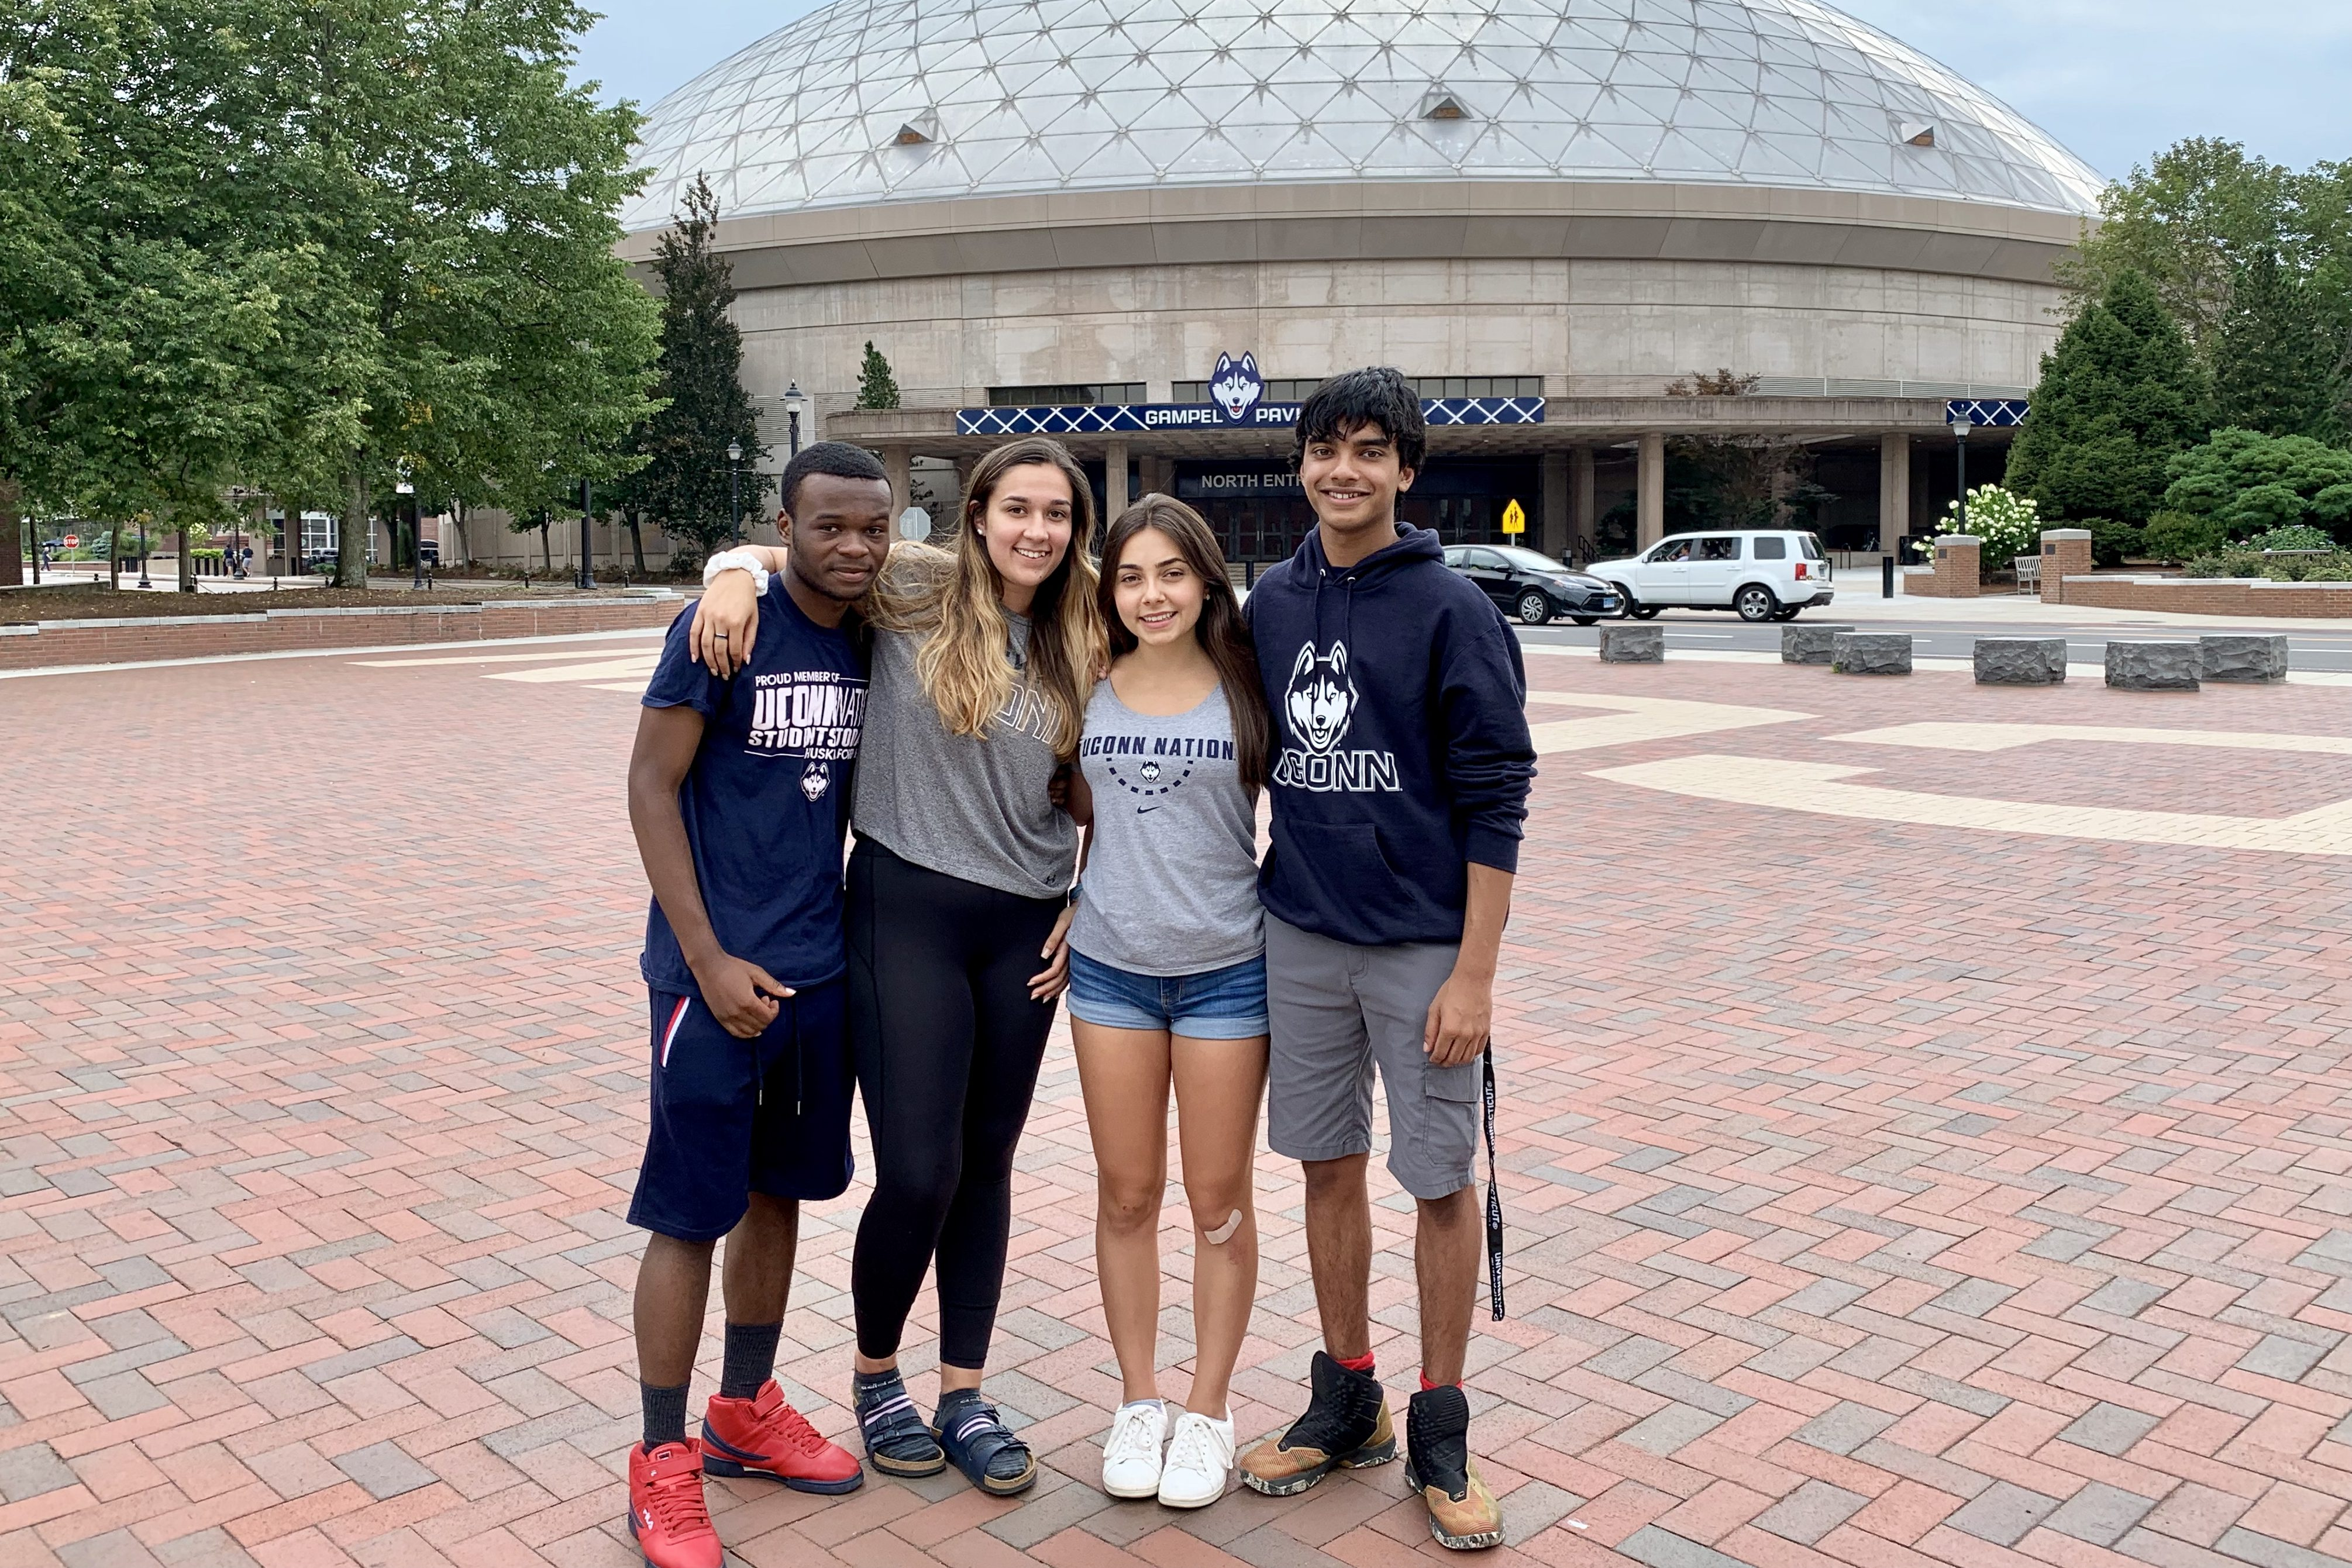 UConn's Class of 2023 includes more than 5,400 incoming freshmen, about 77% of whom live in Connecticut, including (L to R): Heri Mulungula of New Haven, Julia Lawler of Ridgefield, Sarah Ibrahim of Coventry, and Areez Rahim of Avon. (Stephanie Reitz/UConn Photo)